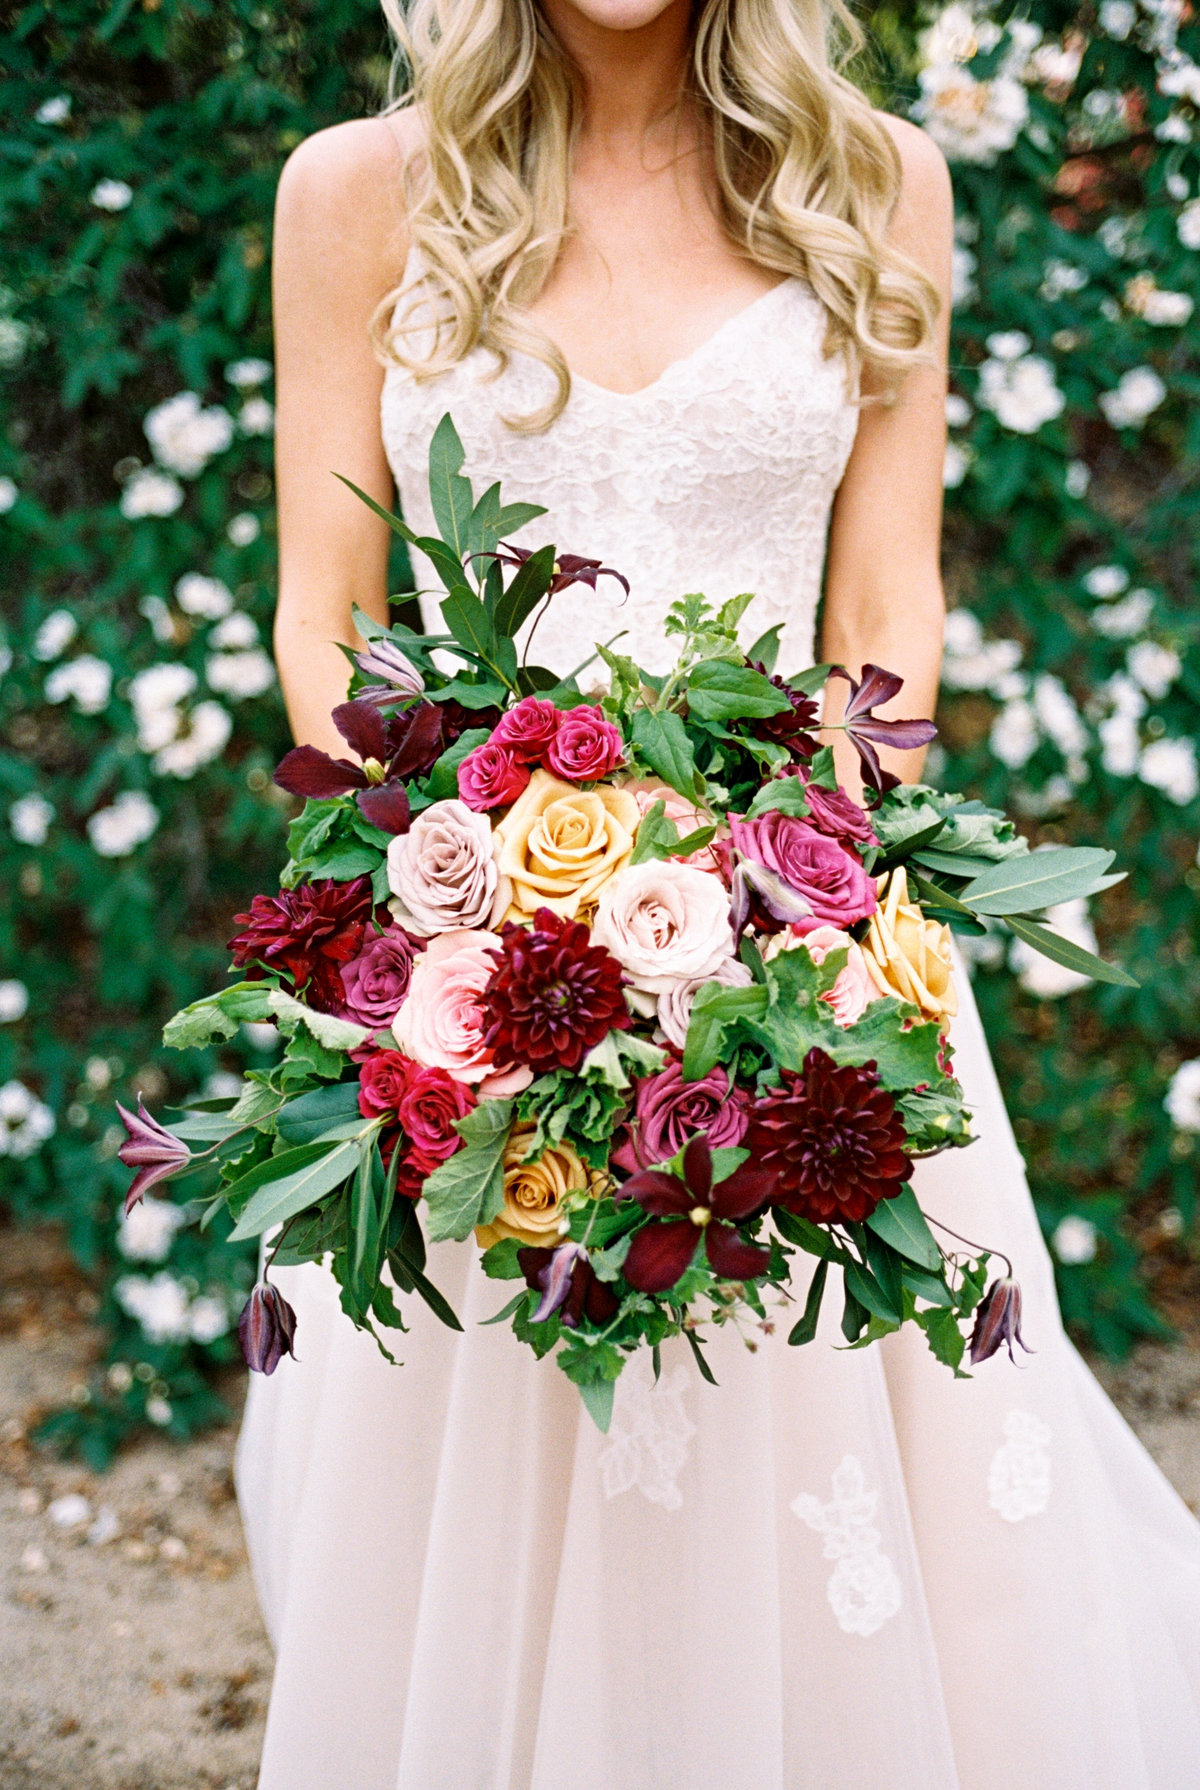 Scottsdale arizona wedding planner Paradise valley country club  Flower studio wedding florals Wedding dress scottsdale Brushfire photography Celebrations in paper Ashley gain weddings Earnhardt Jay worsley videography Earhardt